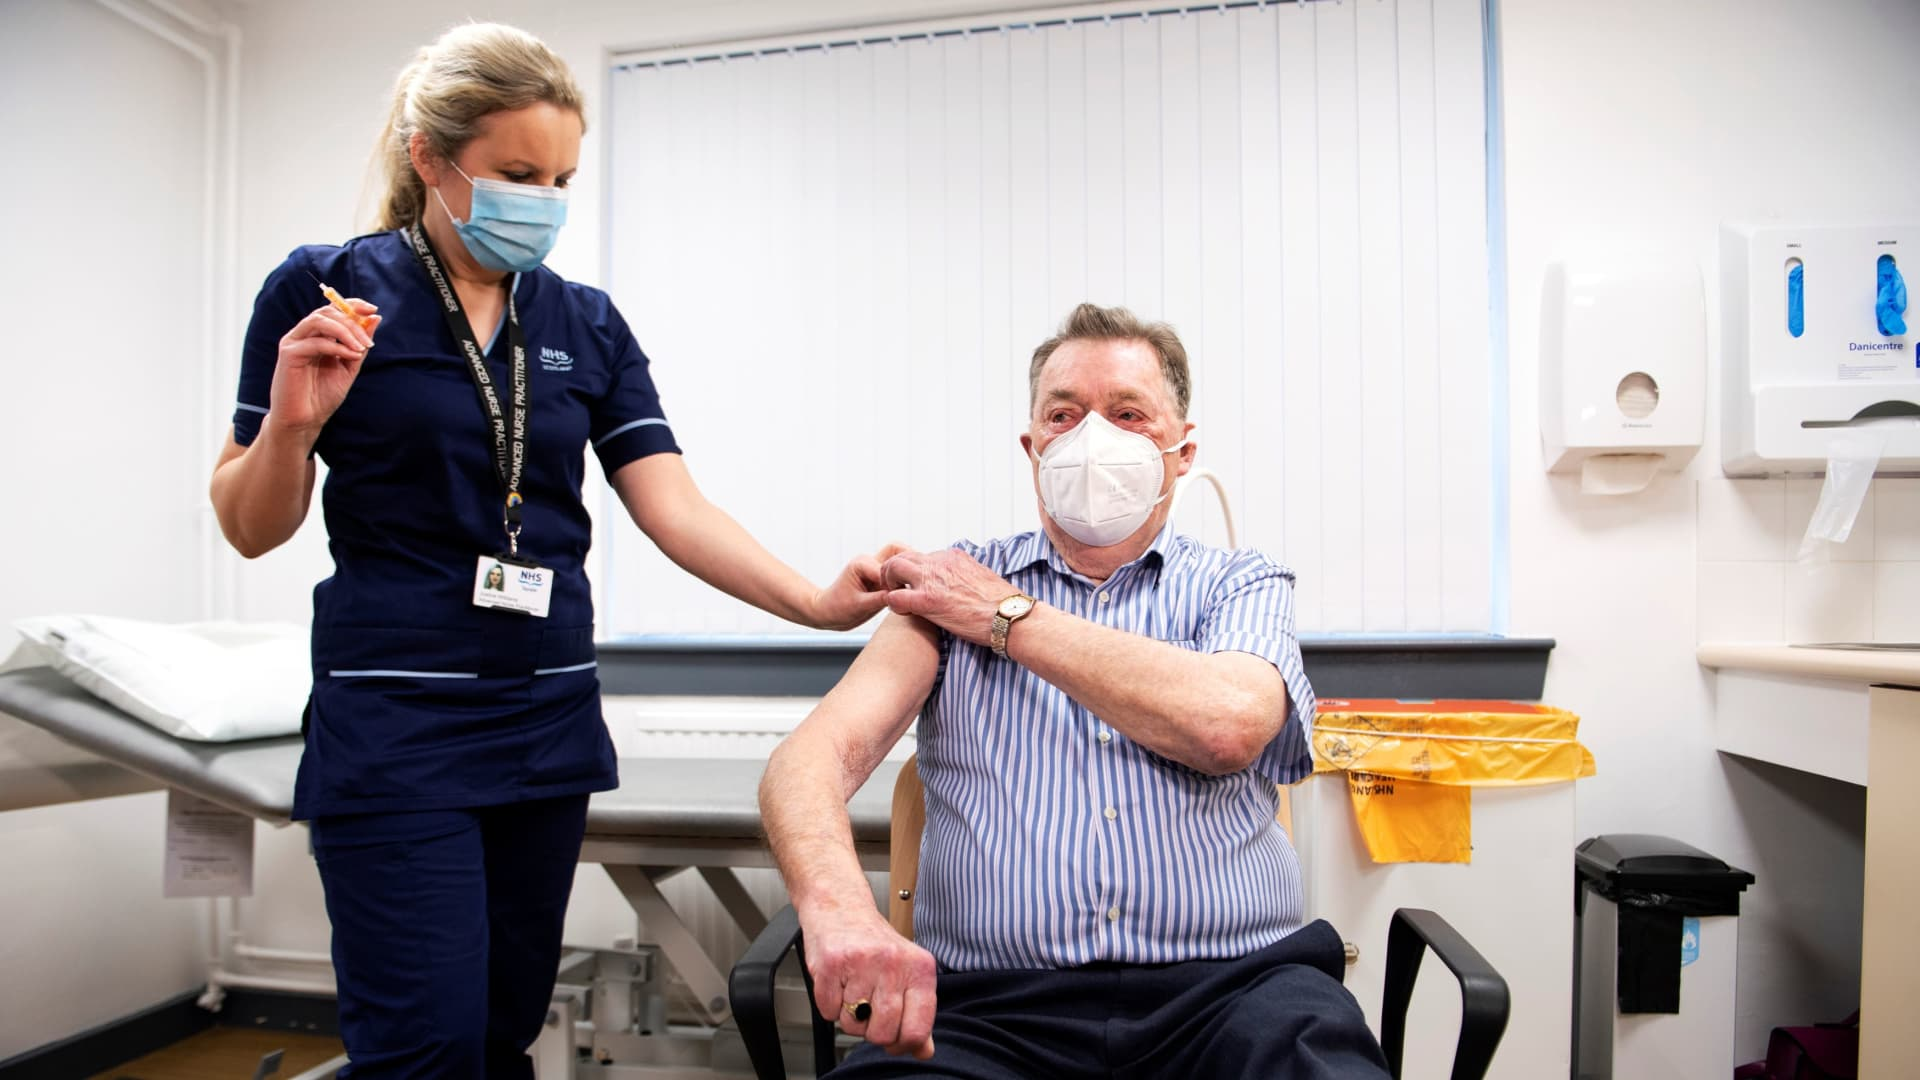 James Shaw, 82, receives the Oxford University/AstraZeneca COVID-19 vaccine from advanced nurse practitioner Justine Williams, at the Lochee Health Centre in Dundee, Scotland, Britain January 4, 2021.